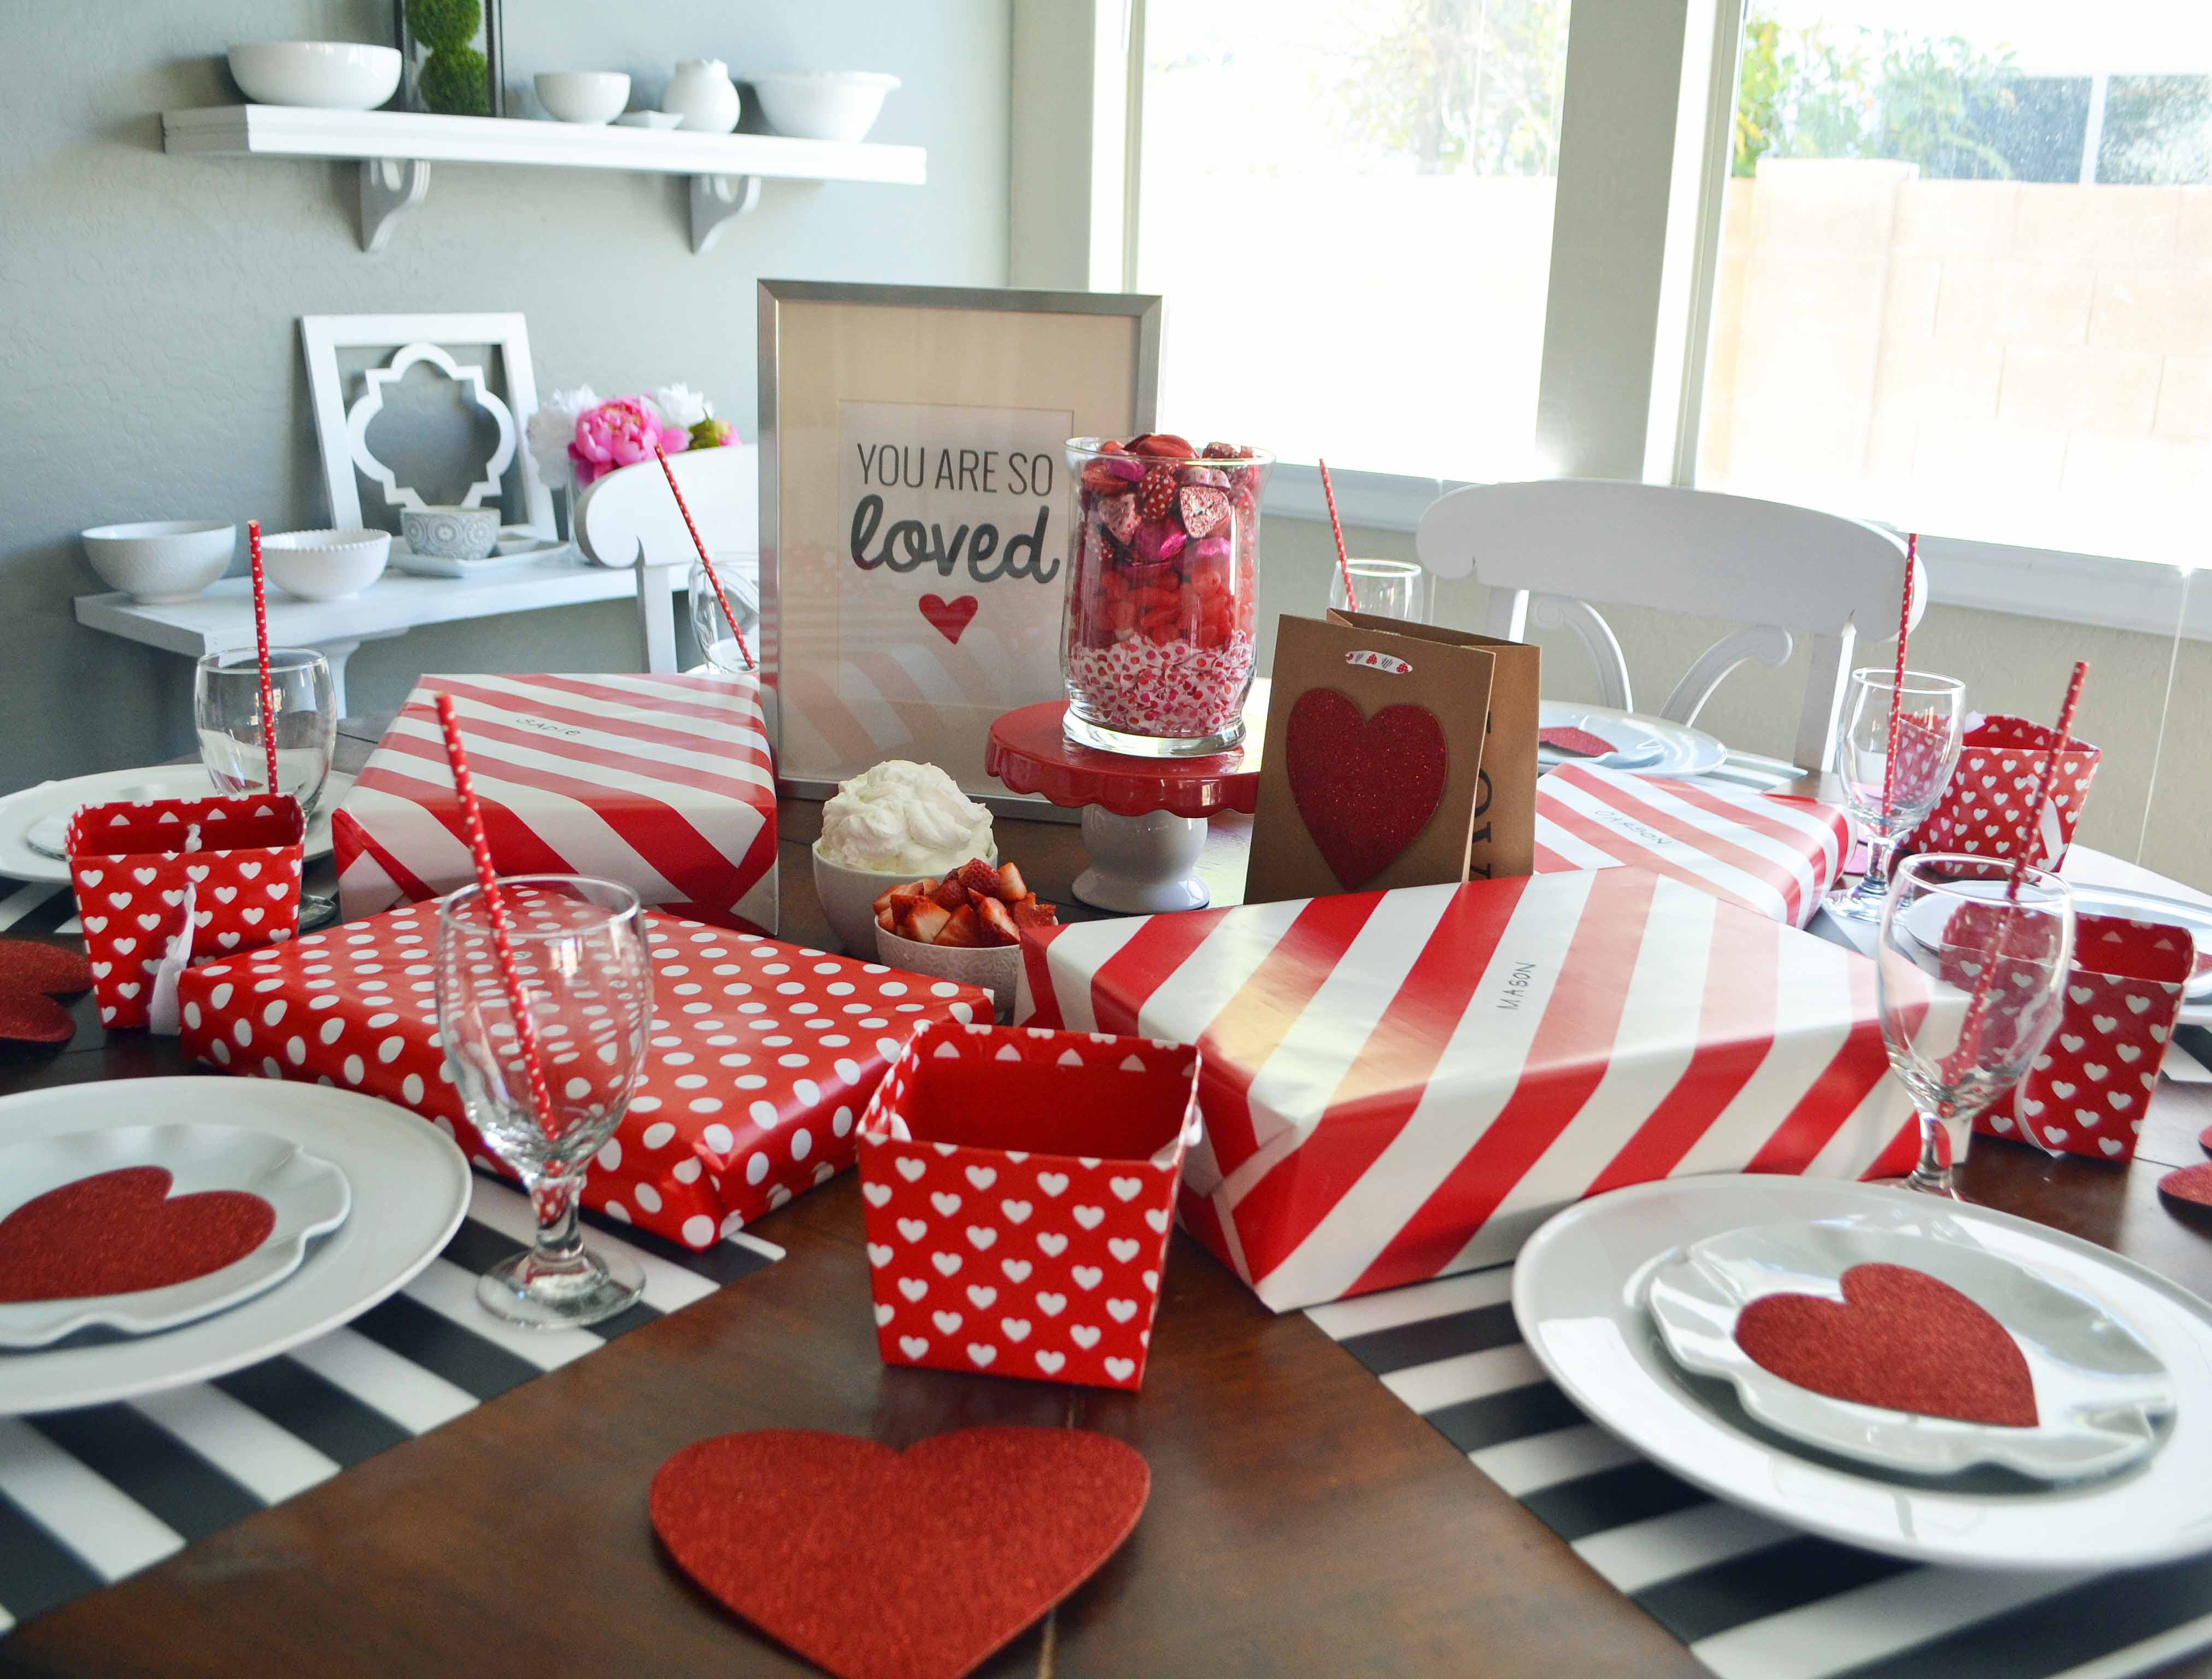 Five 5 Ways to Make Valentine's Day special for kids. Ideas on how to make Valentine's Day fun for families. Valentine's Day tablescapes, Valentine's Day decor ideas, Valentine's day photo shoot, Valentine's day printables, and Valentine's Day cookies. www.modernhoney.com